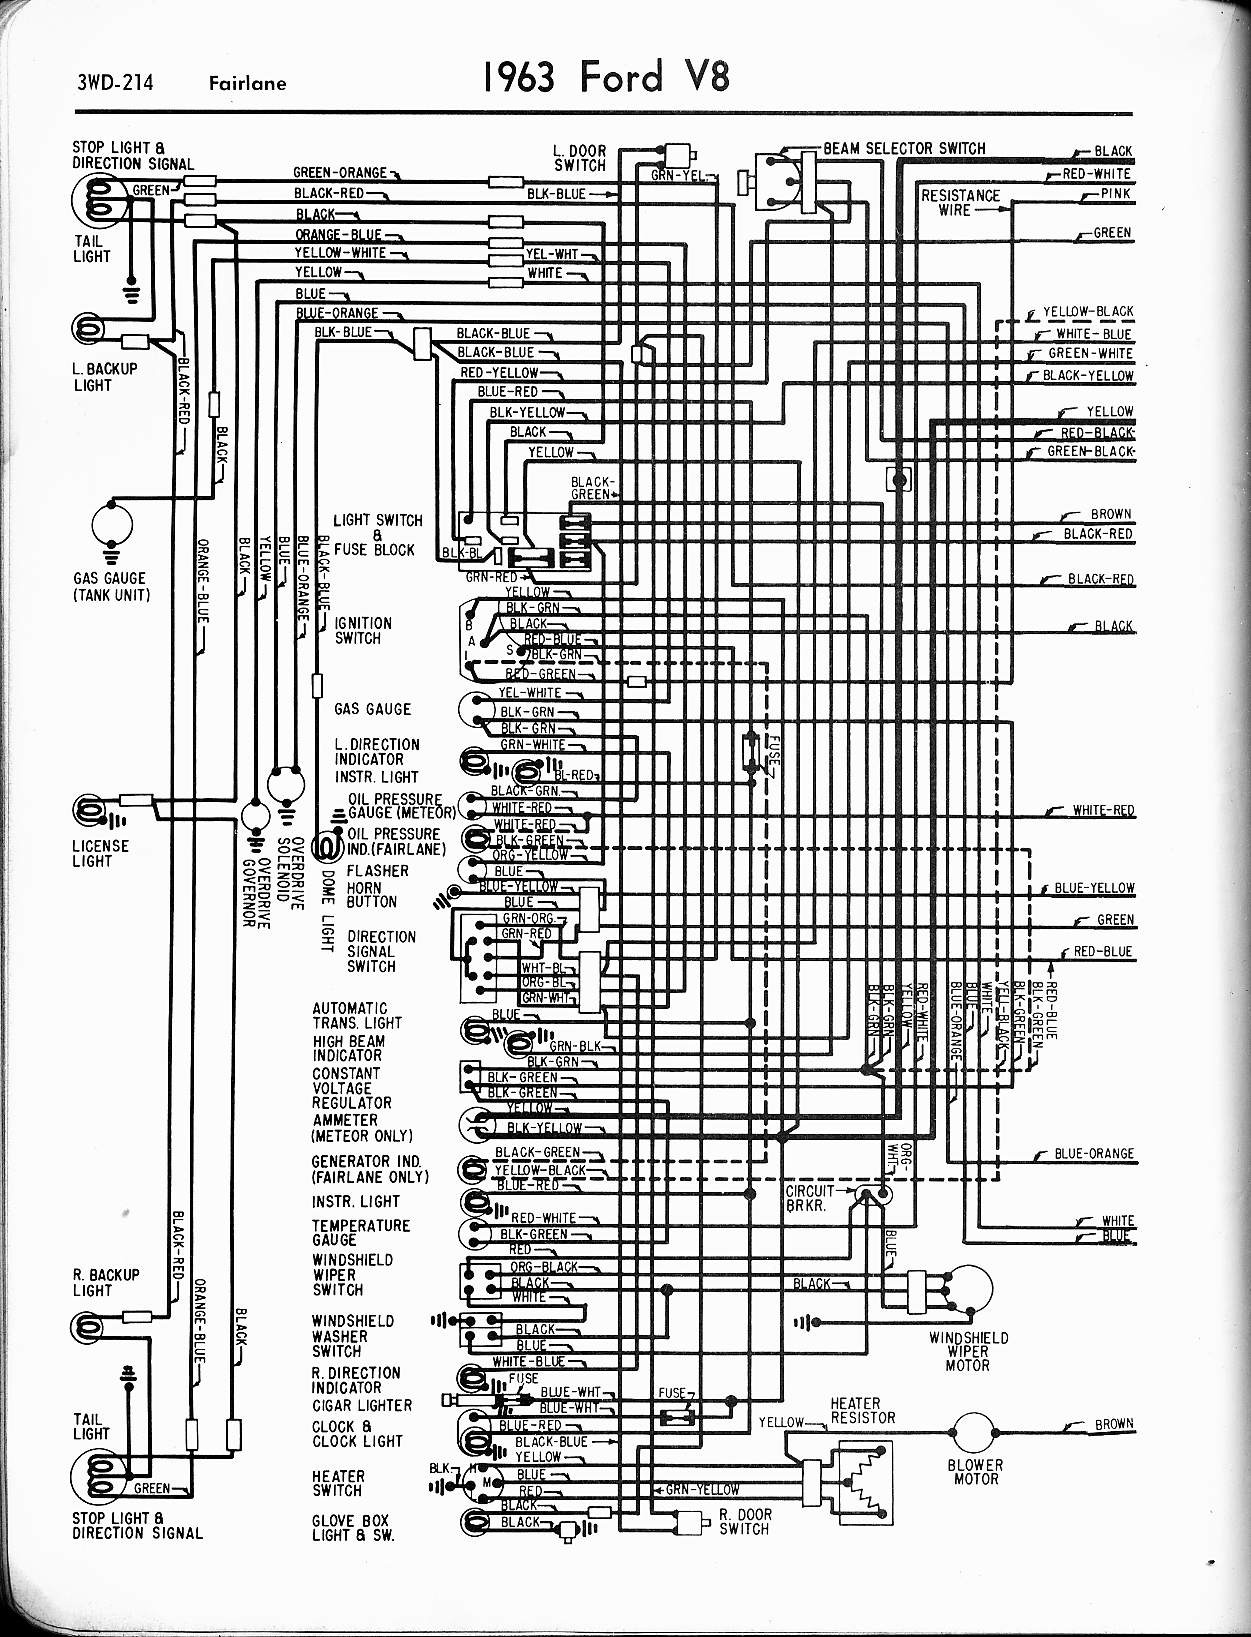 F650 Wiring Diagram Detailed Schematics F650gs For Ford Schematic Diagrams F150 1963 Electrical